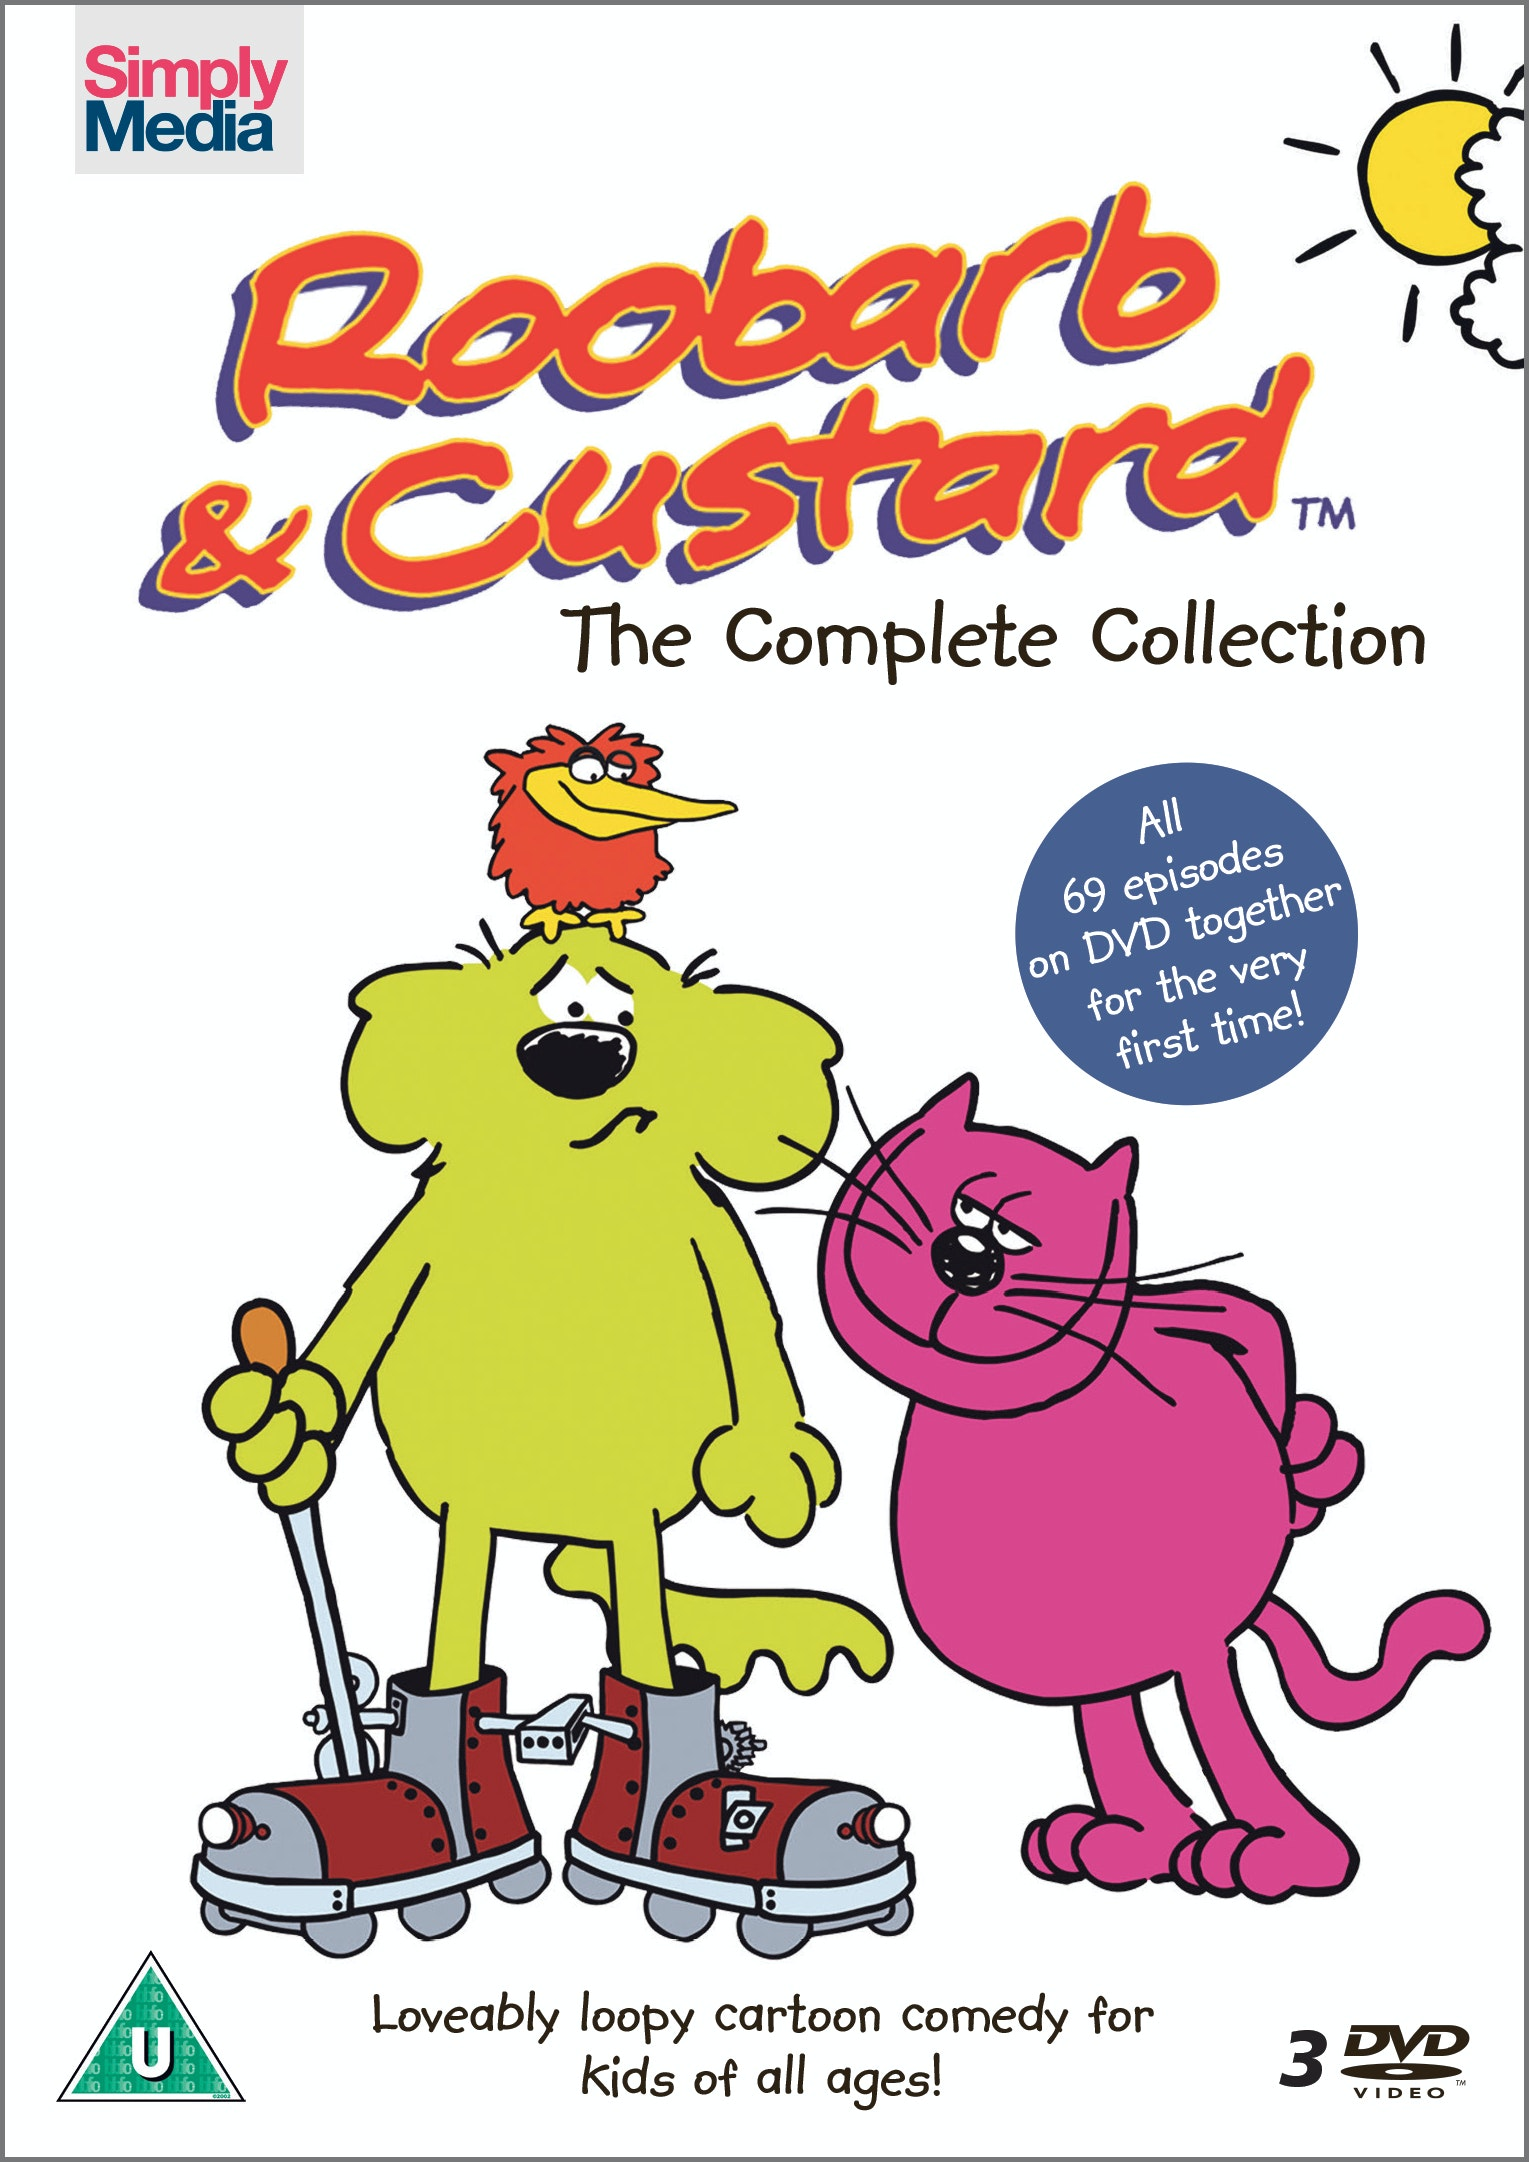 Roobarb and Custard: The Complete Collection DVD sweepstakes